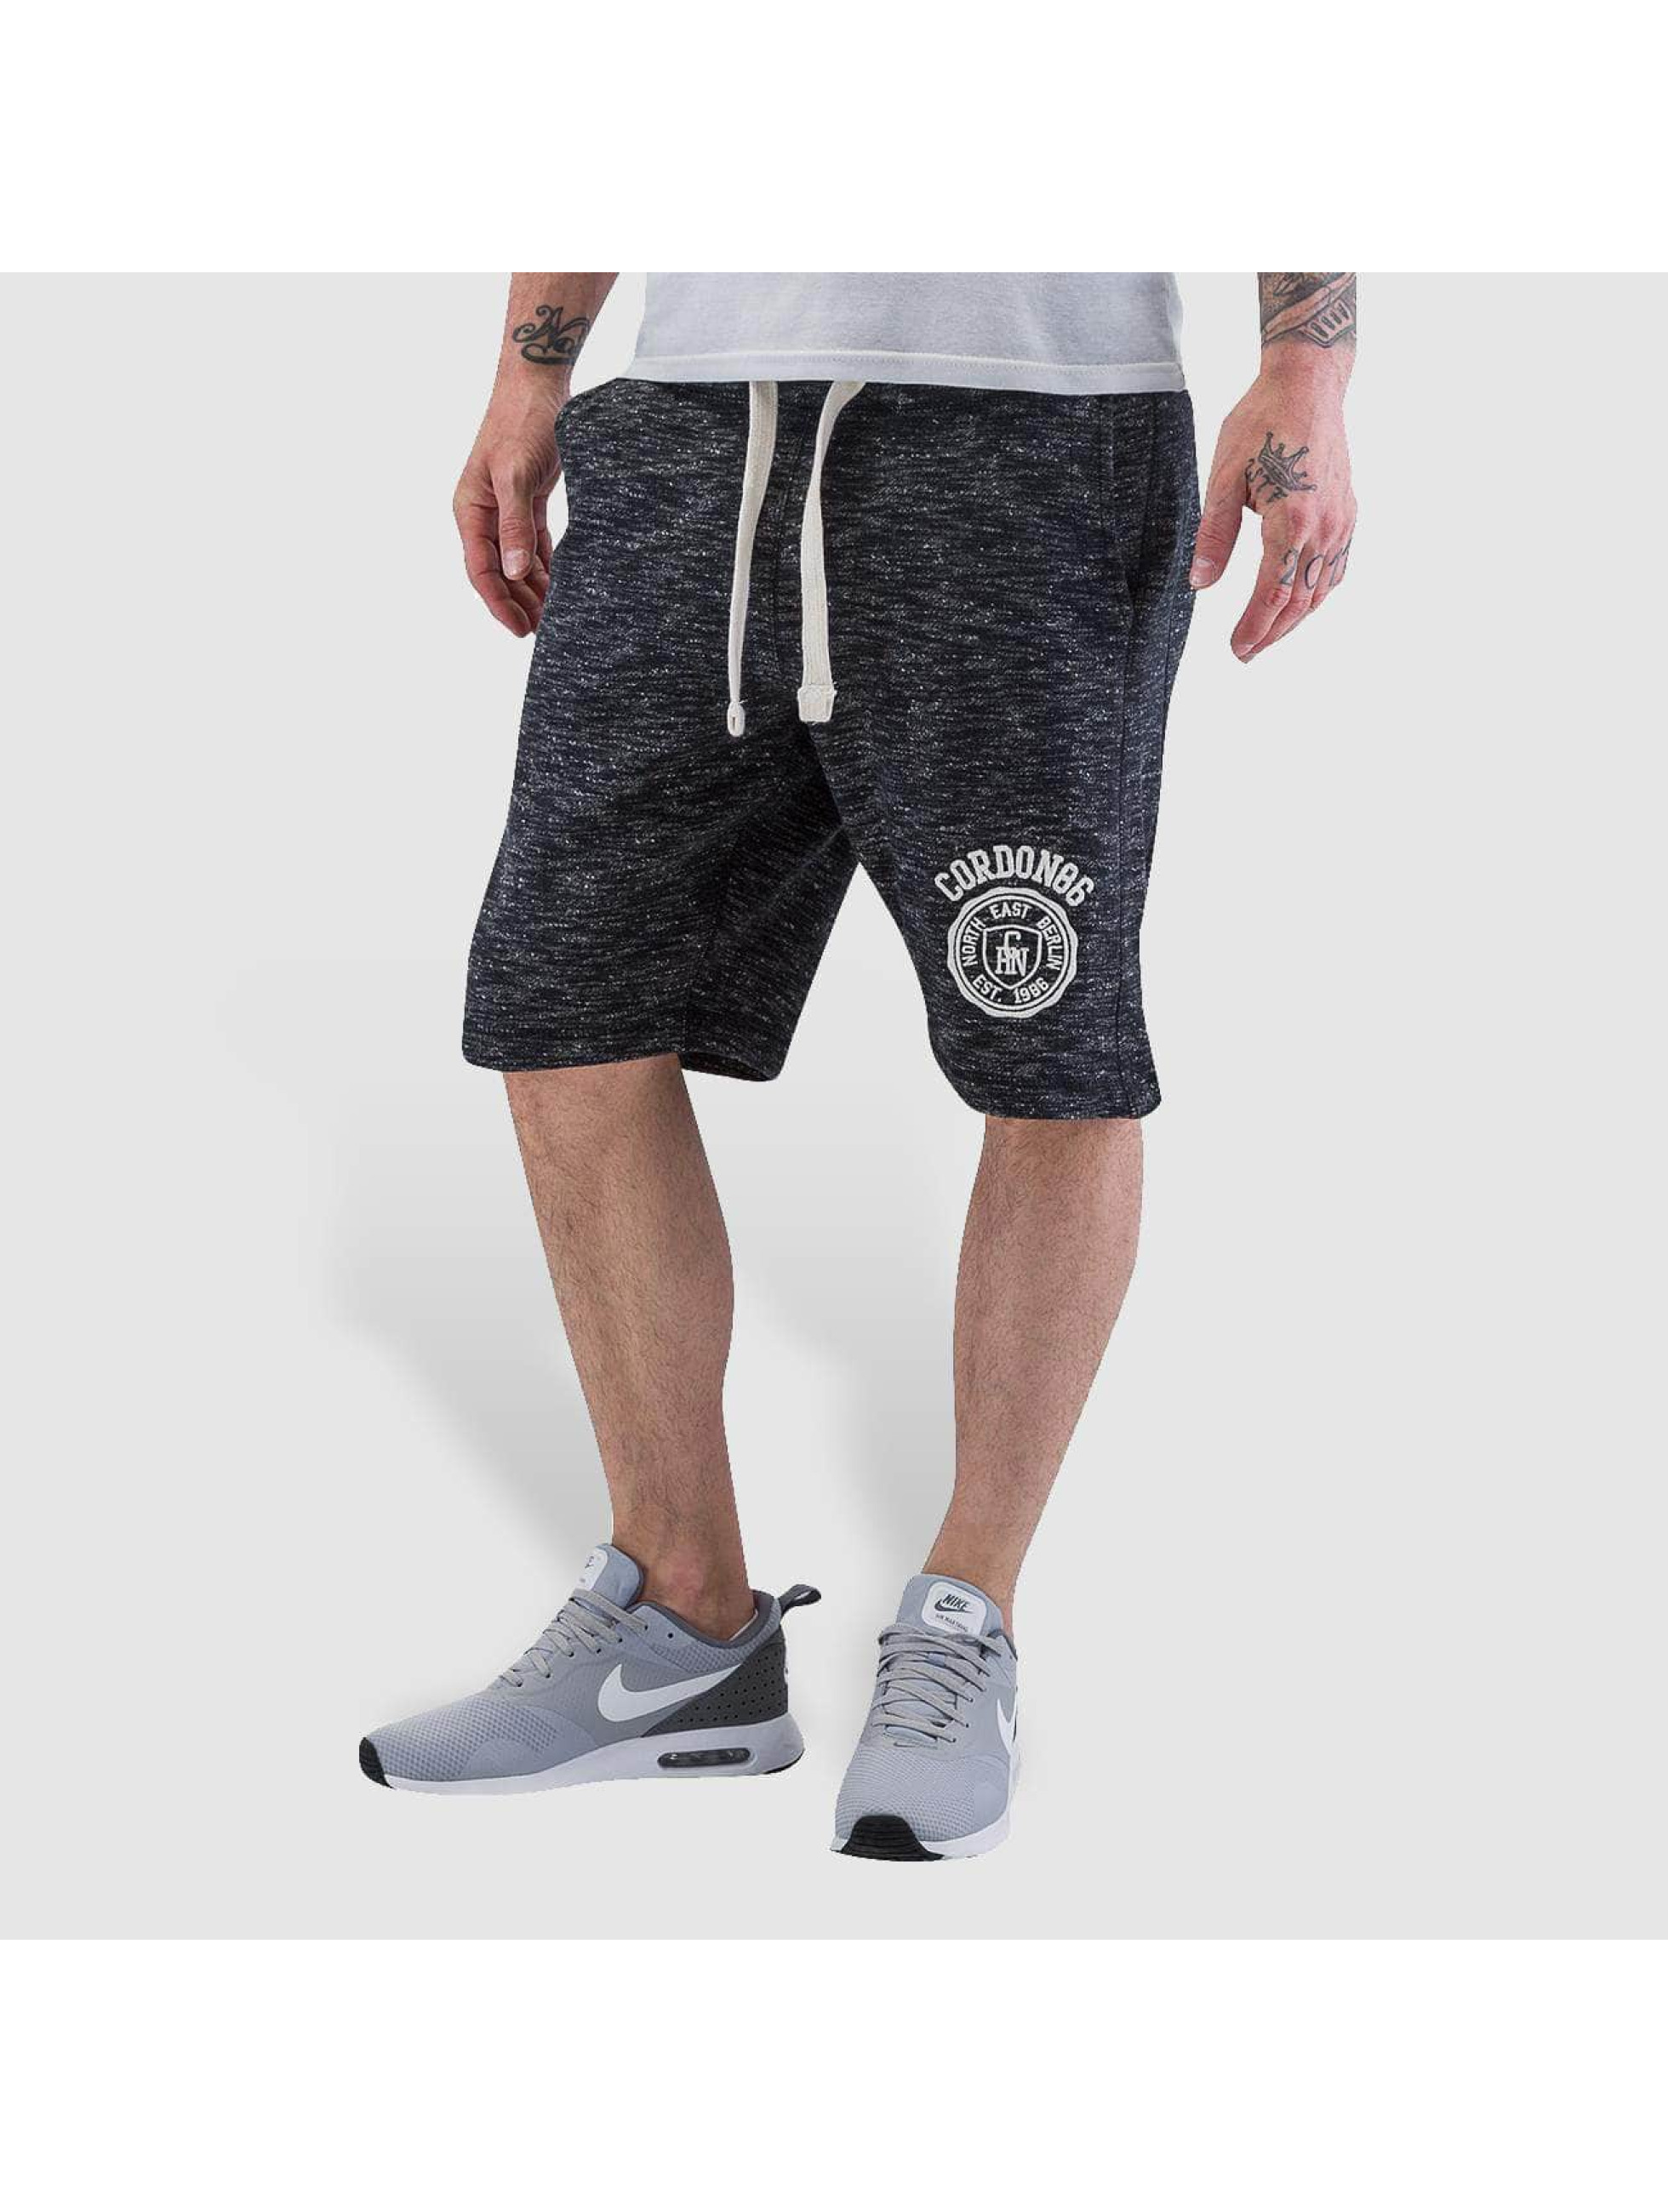 Cordon Short Piero black